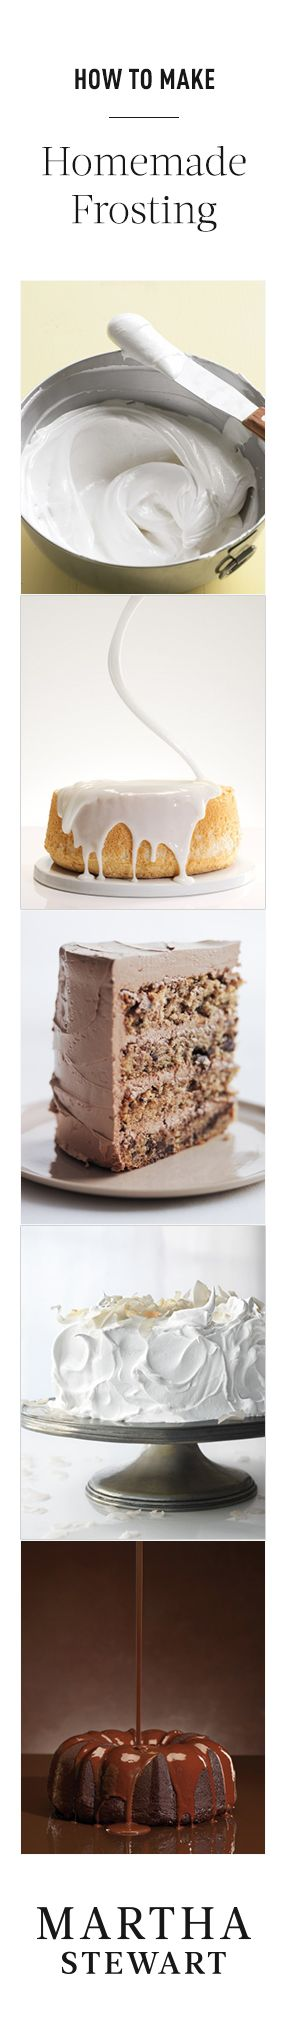 15 Homemade Frosting Recipes from Martha Stewart